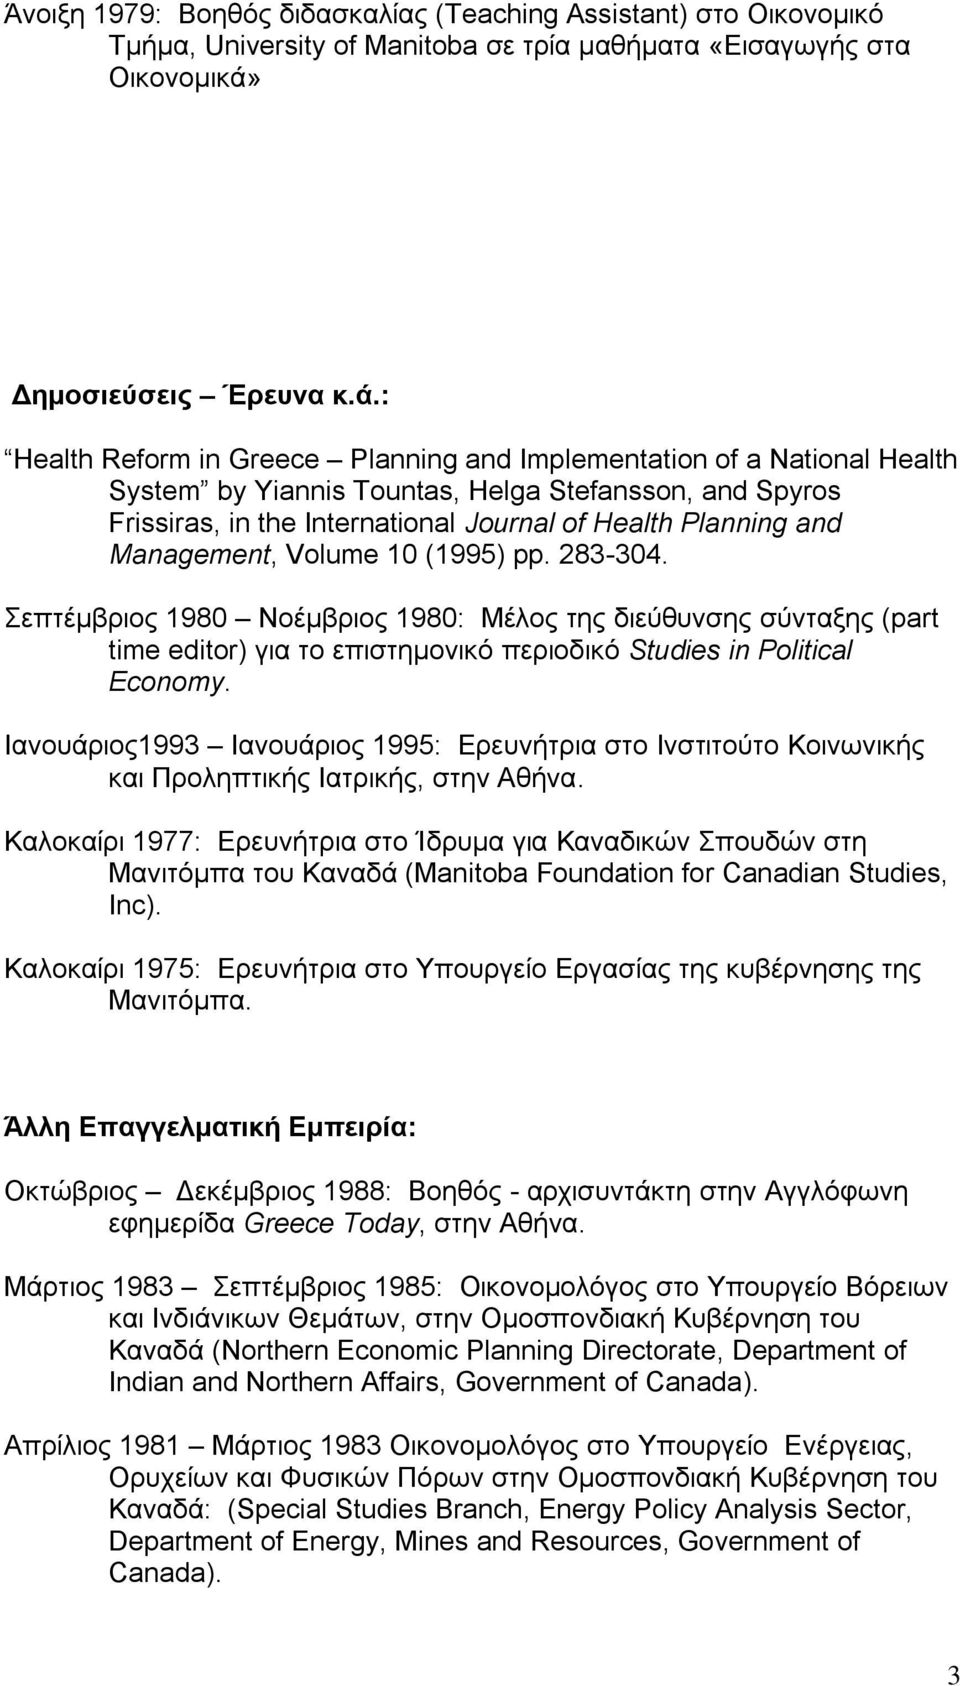 : Health Reform in Greece Planning and Implementation of a National Health System by Yiannis Tountas, Helga Stefansson, and Spyros Frissiras, in the International Journal of Health Planning and